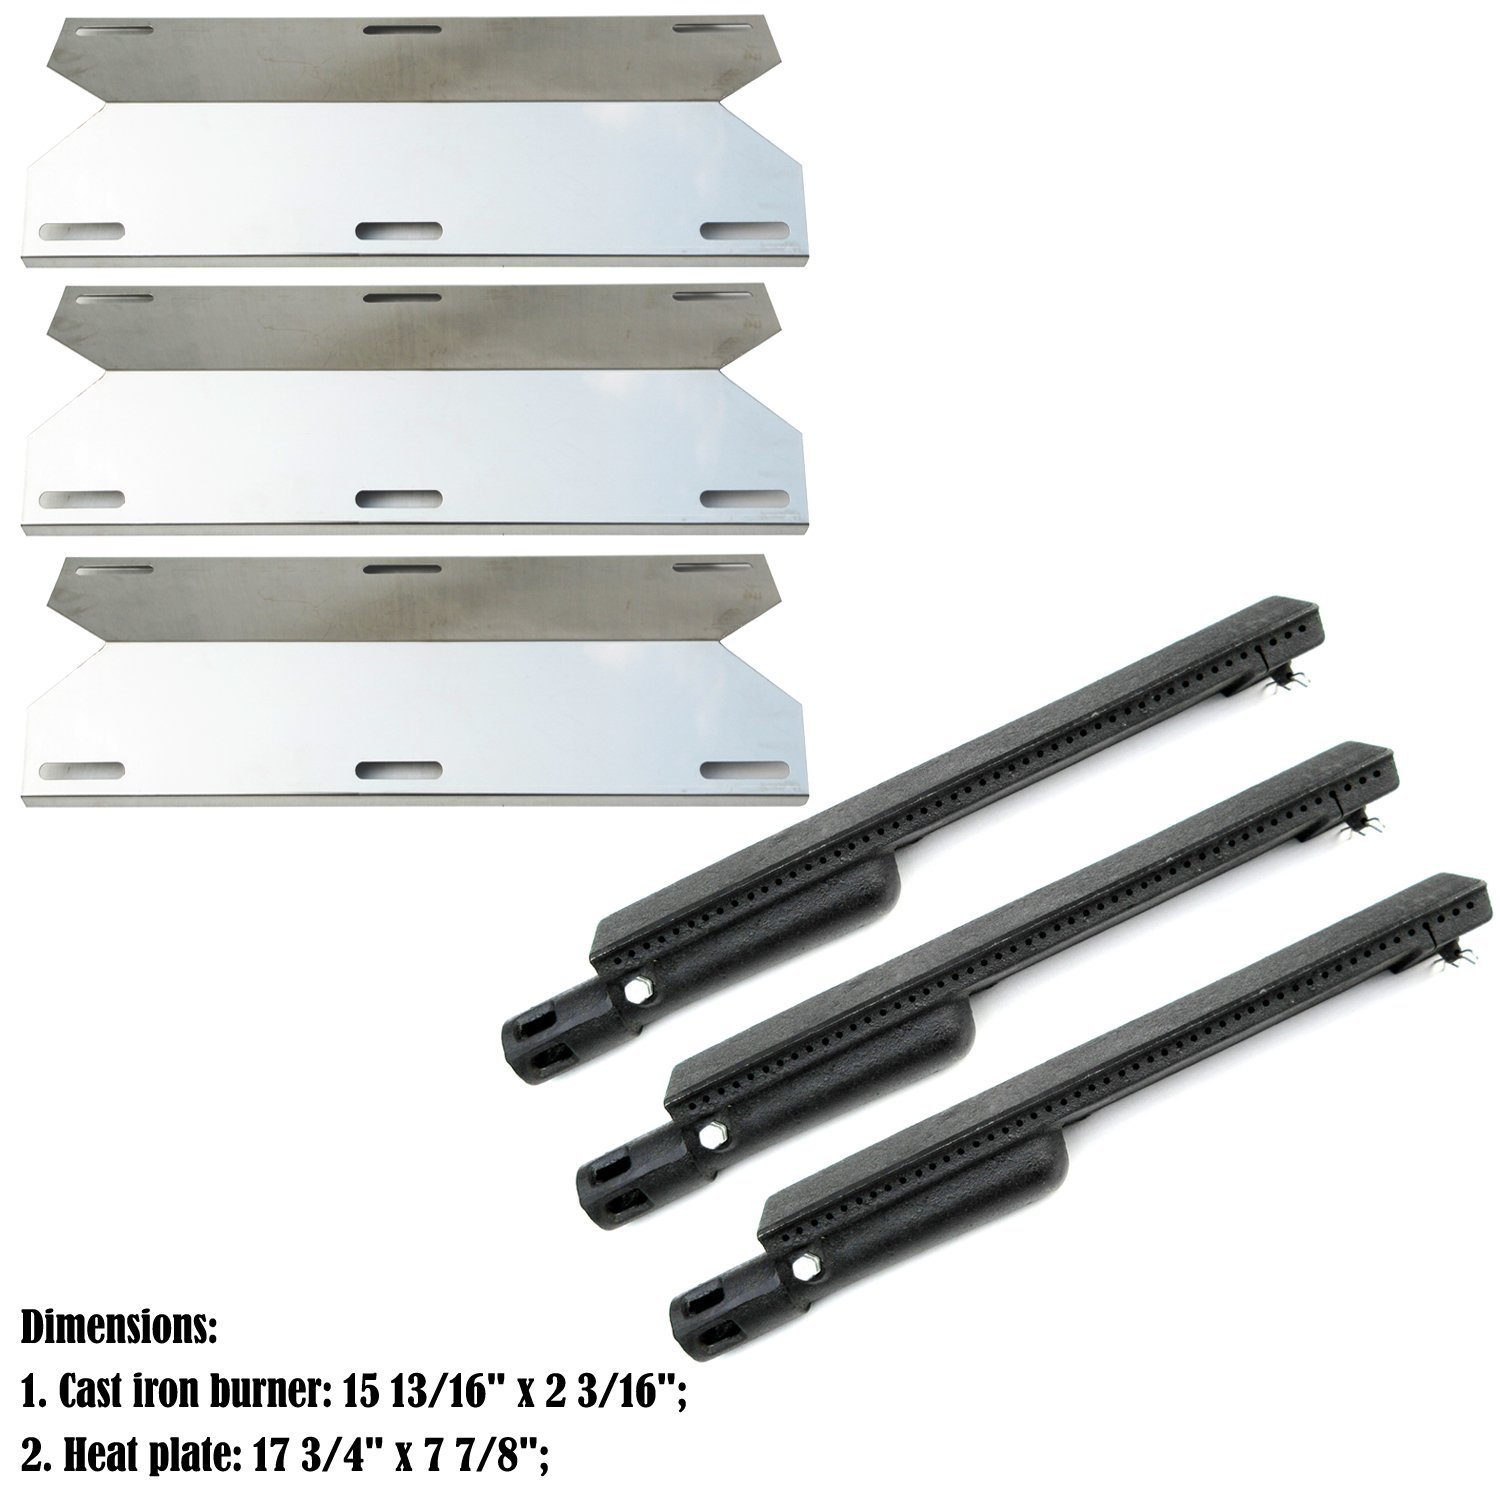 Direct store Parts Kit DG225 Replacement Jenn Air 730-0163, 720-0163 Gas Grill Repair Kit Burner and Heat Plates - 3 Pack